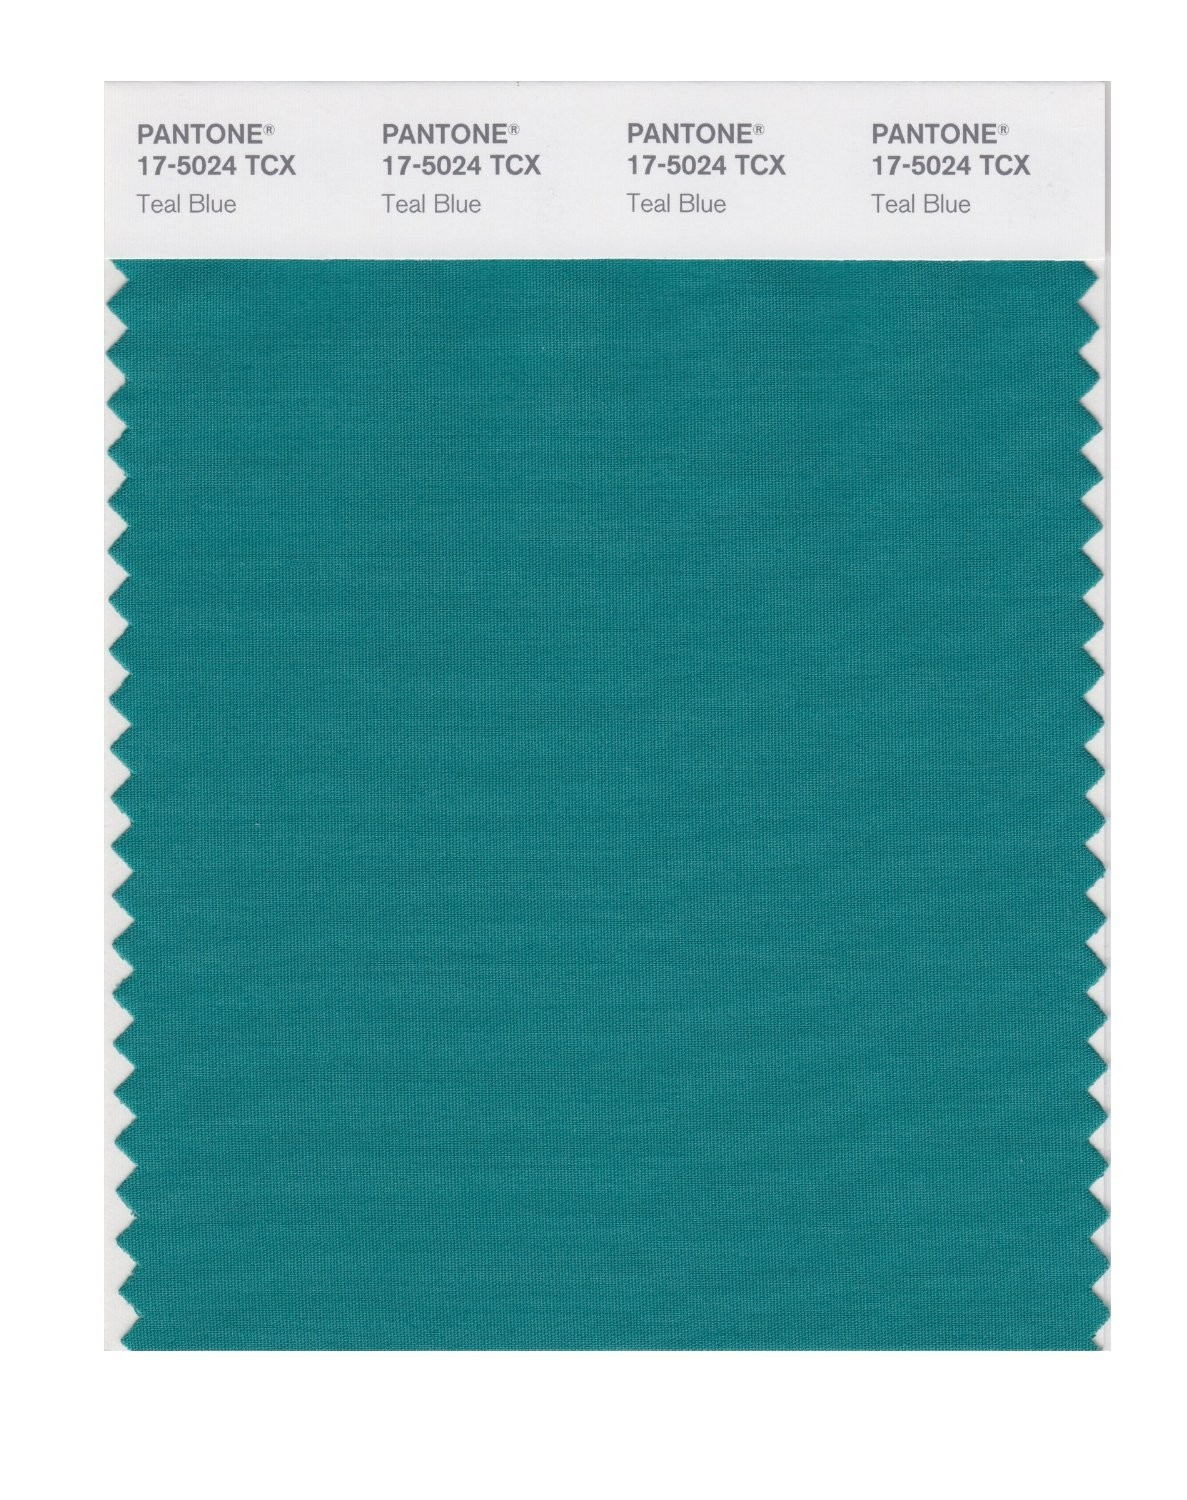 Pantone 17-5024 TCX Swatch Card Teal Blue